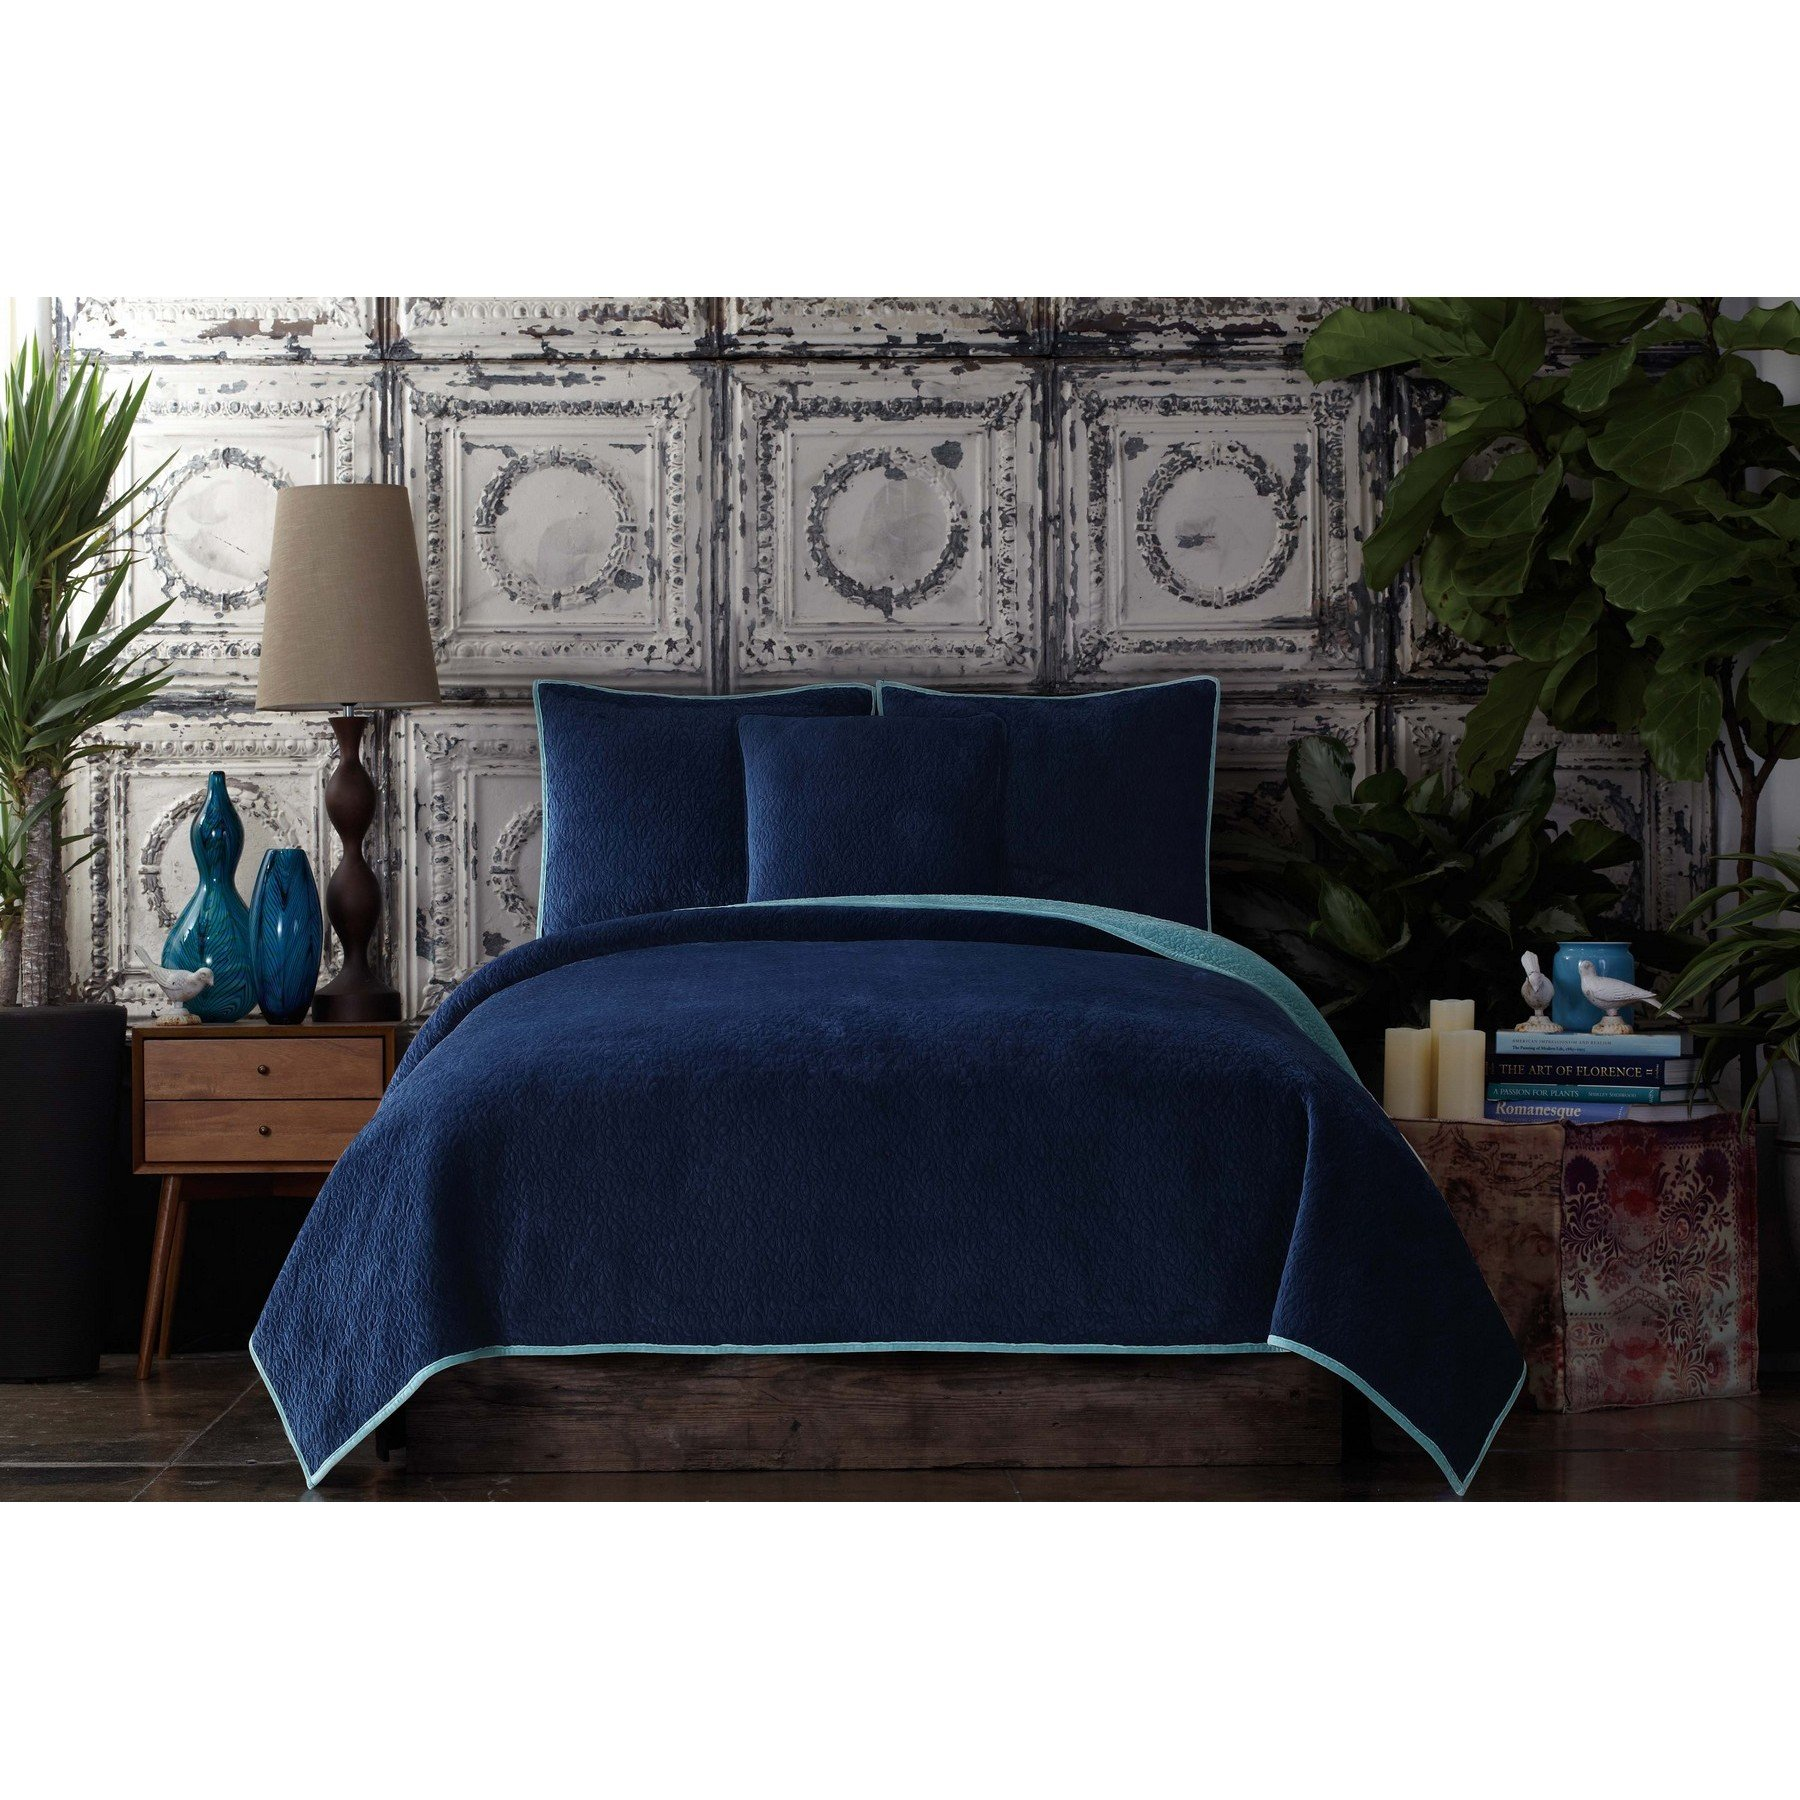 Poetic Wanderlust by Tracy Porter BQ2091BIKC-4400 Solid Reversible Velvet Coverlet, King, Cobalt Blue and Aquamarine Blue by Poetic Wanderlust By Tracy Porter